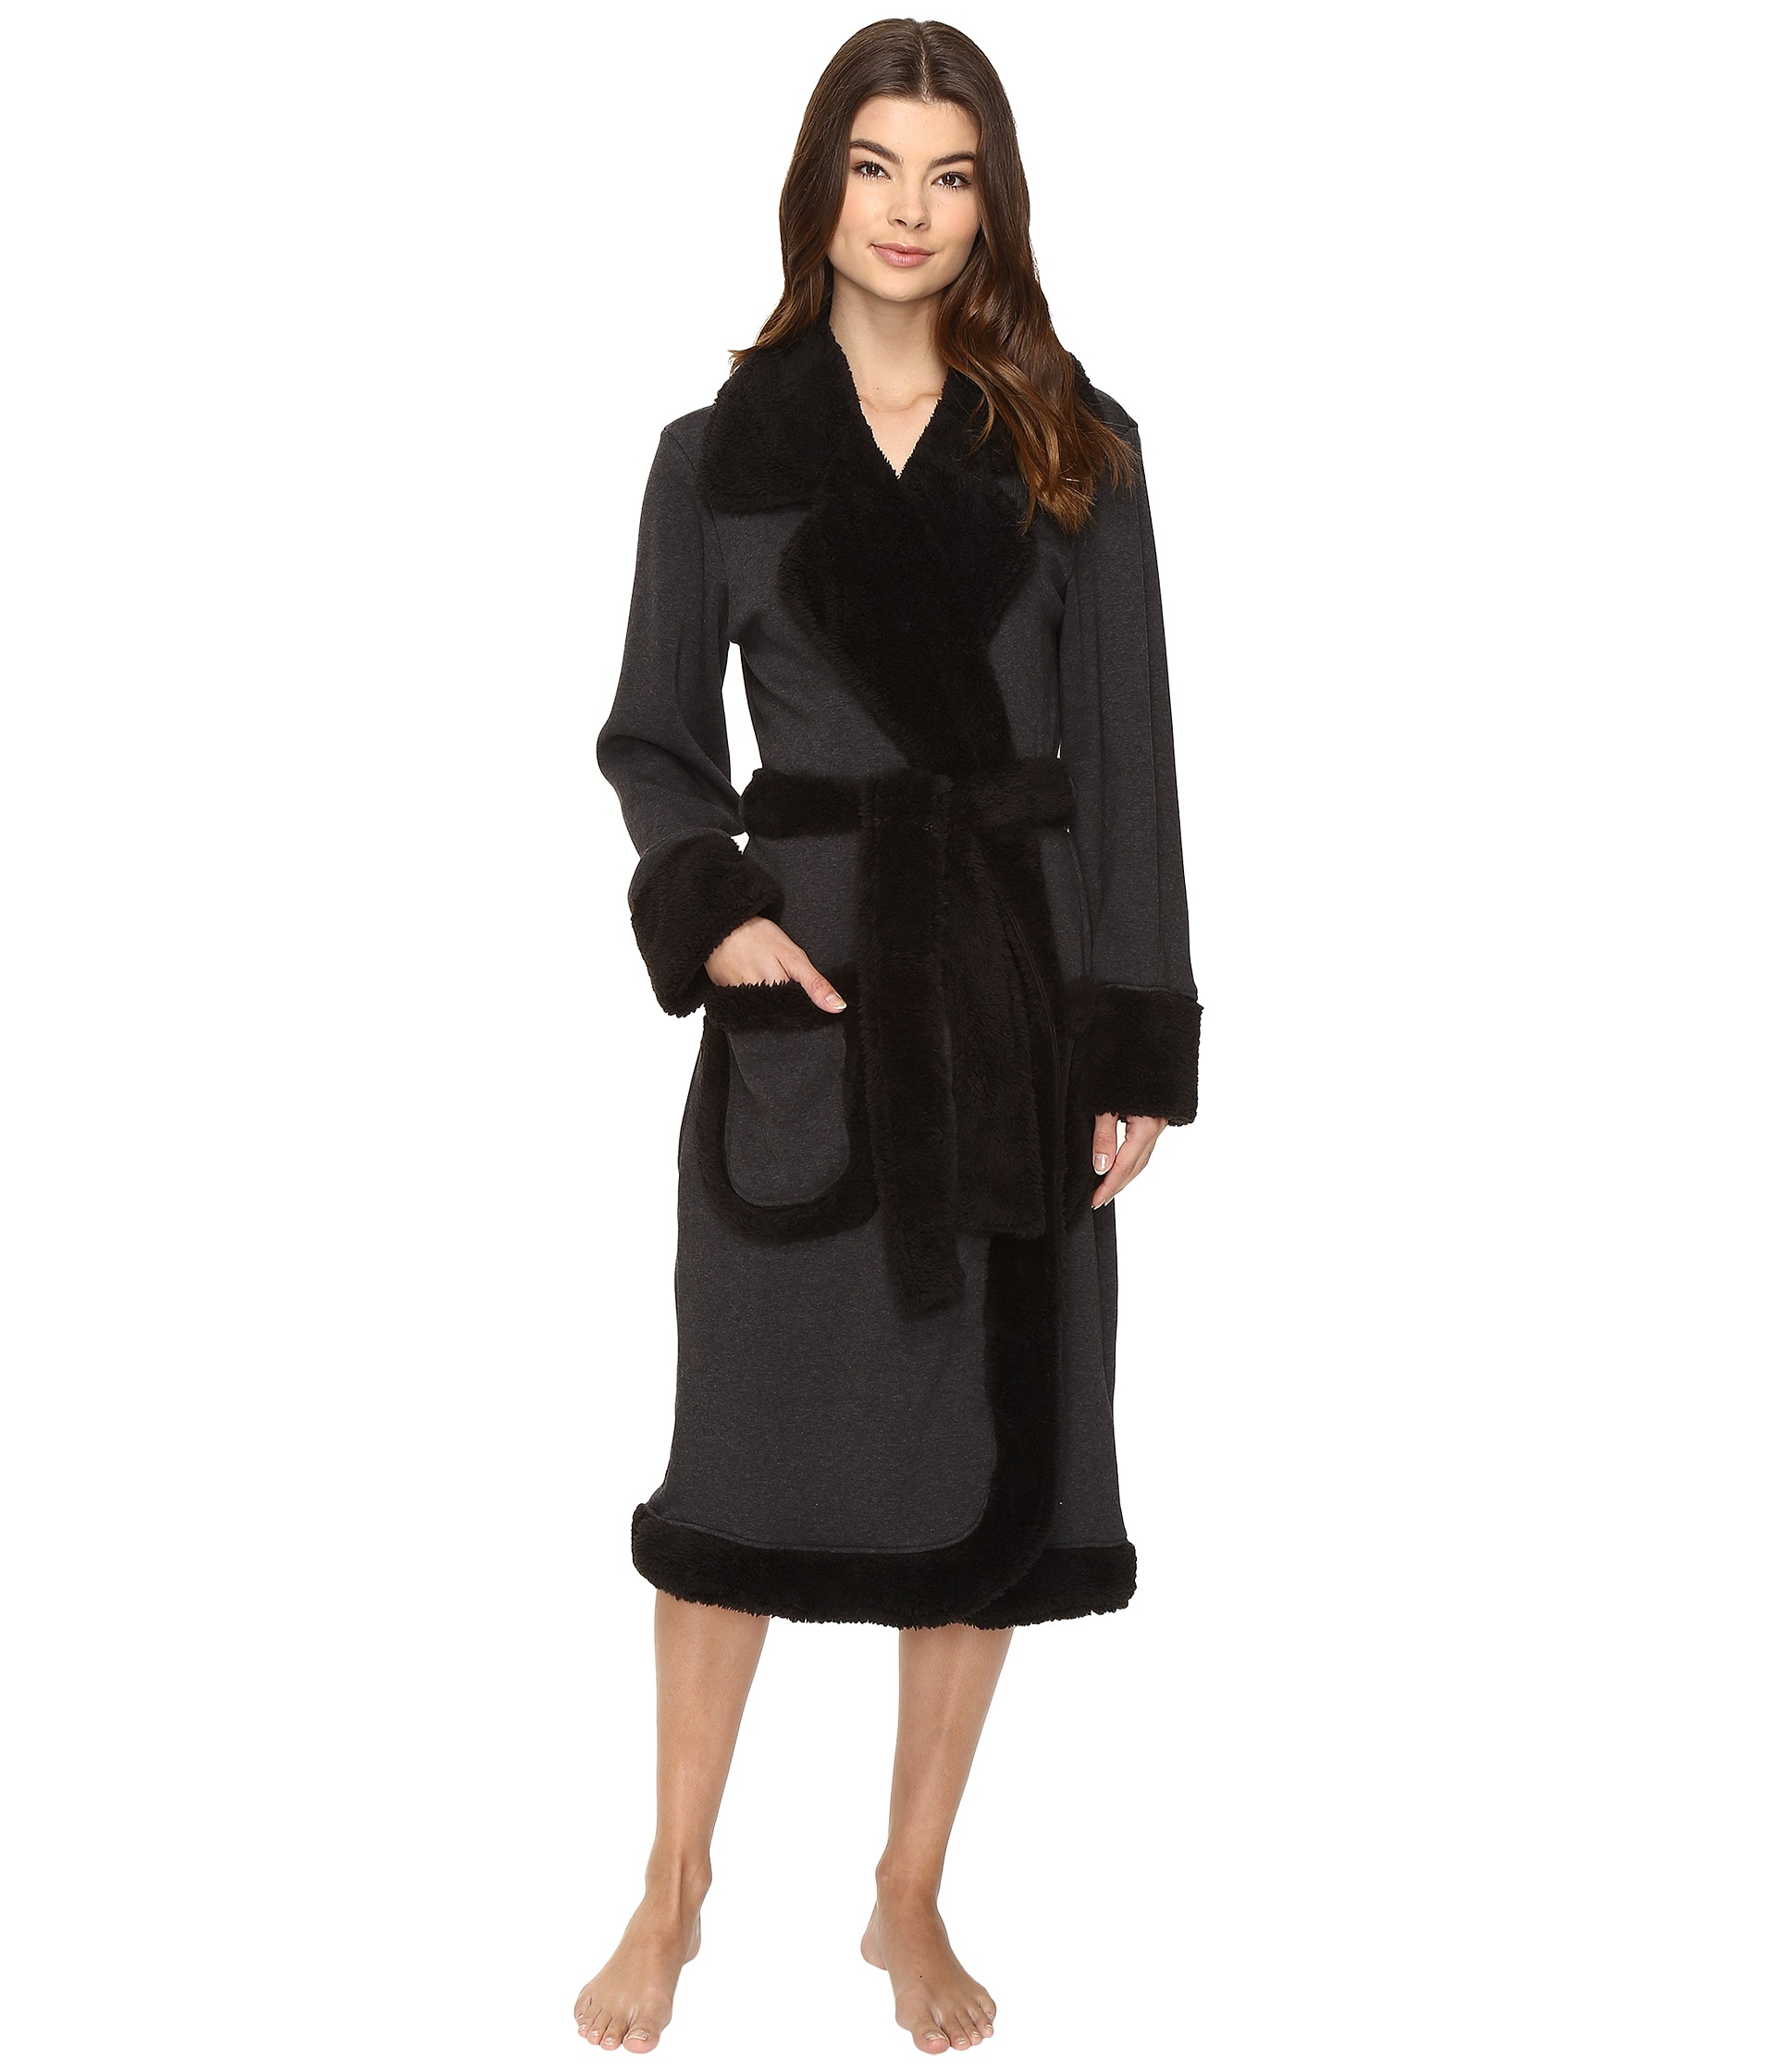 ugg duffield deluxe robe free shipping both ways. Black Bedroom Furniture Sets. Home Design Ideas